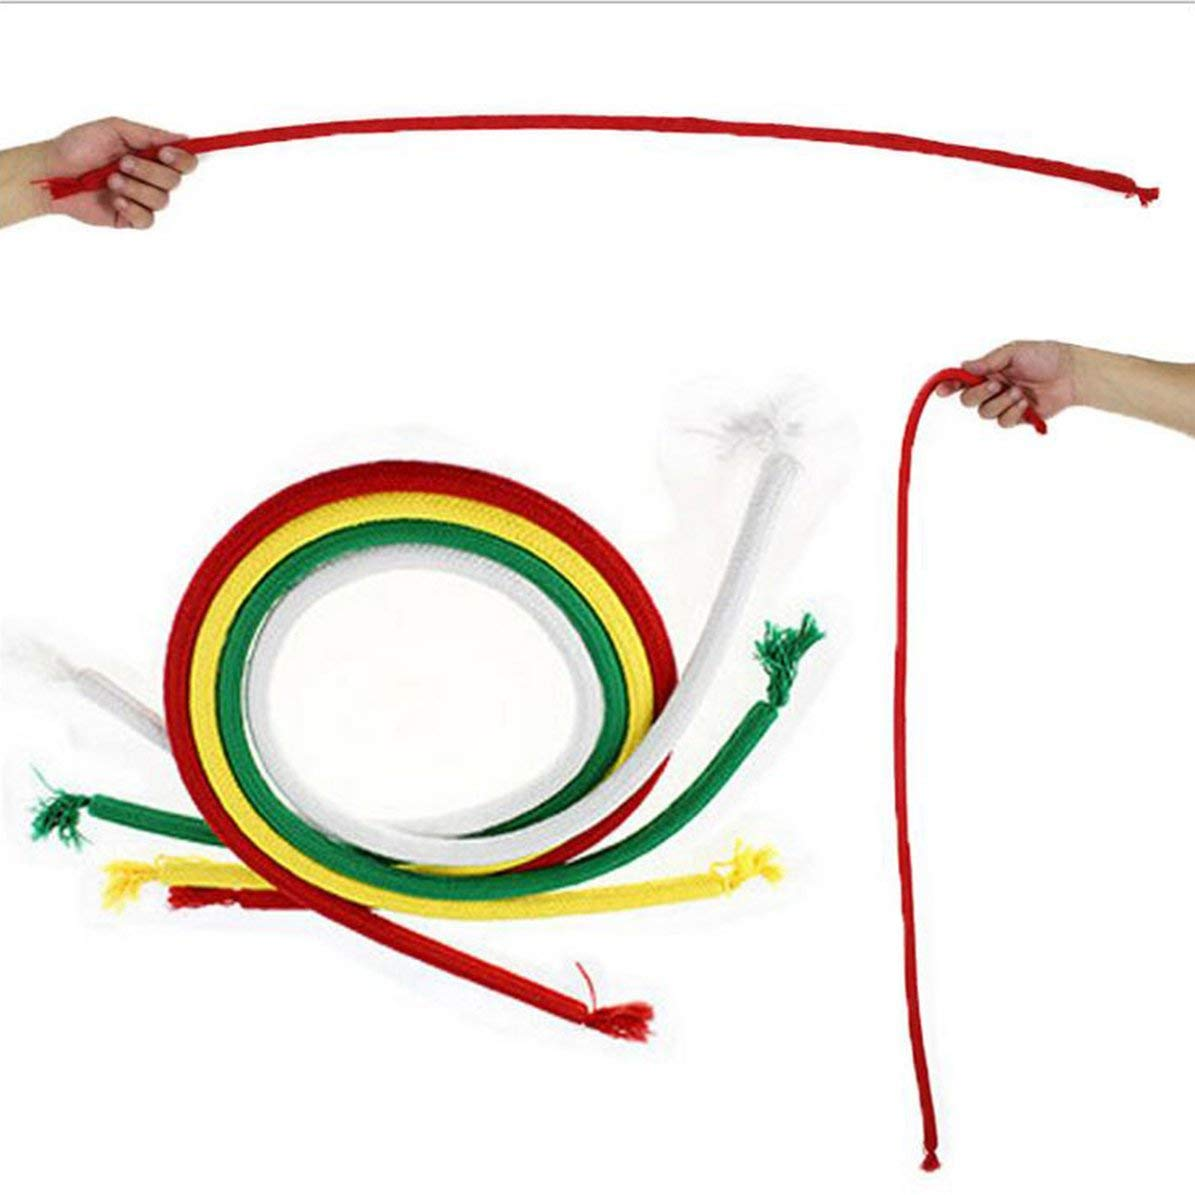 Portable Magic Rope Soft Hard Bend Rope Lightweight Stiff Rope Magician Props Toys Universal Magic Trick Toy DoMoment